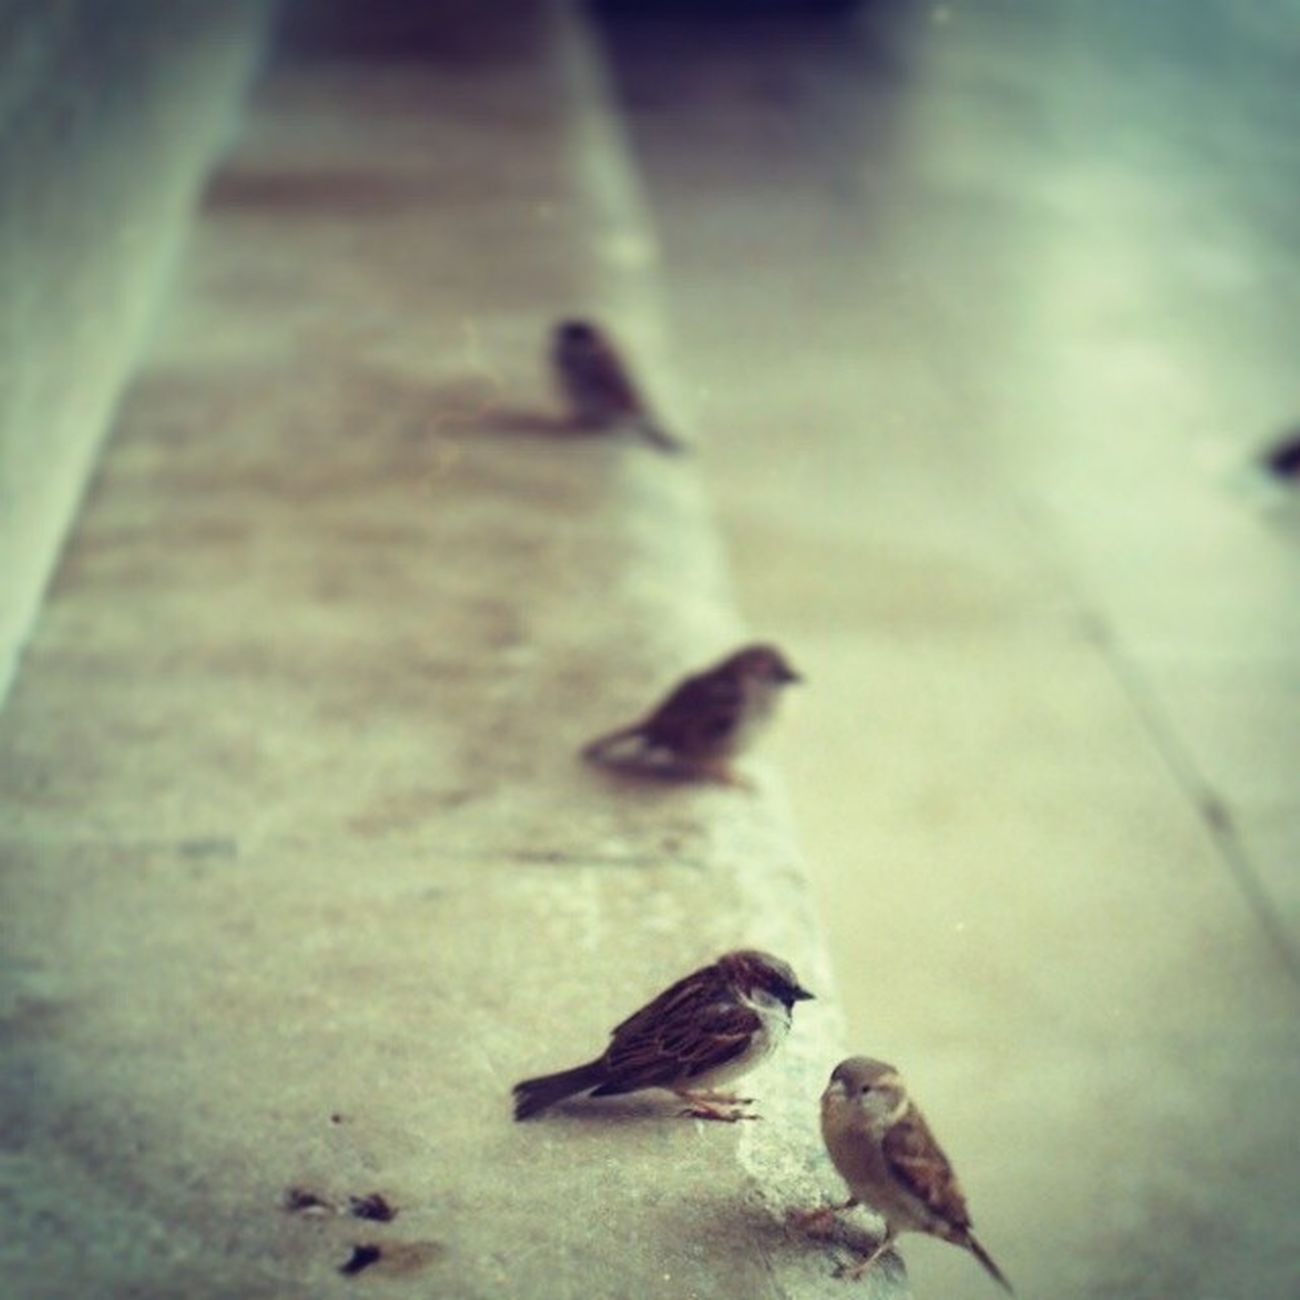 Birds on Stairs Animal EarthInstagram picofday instapic